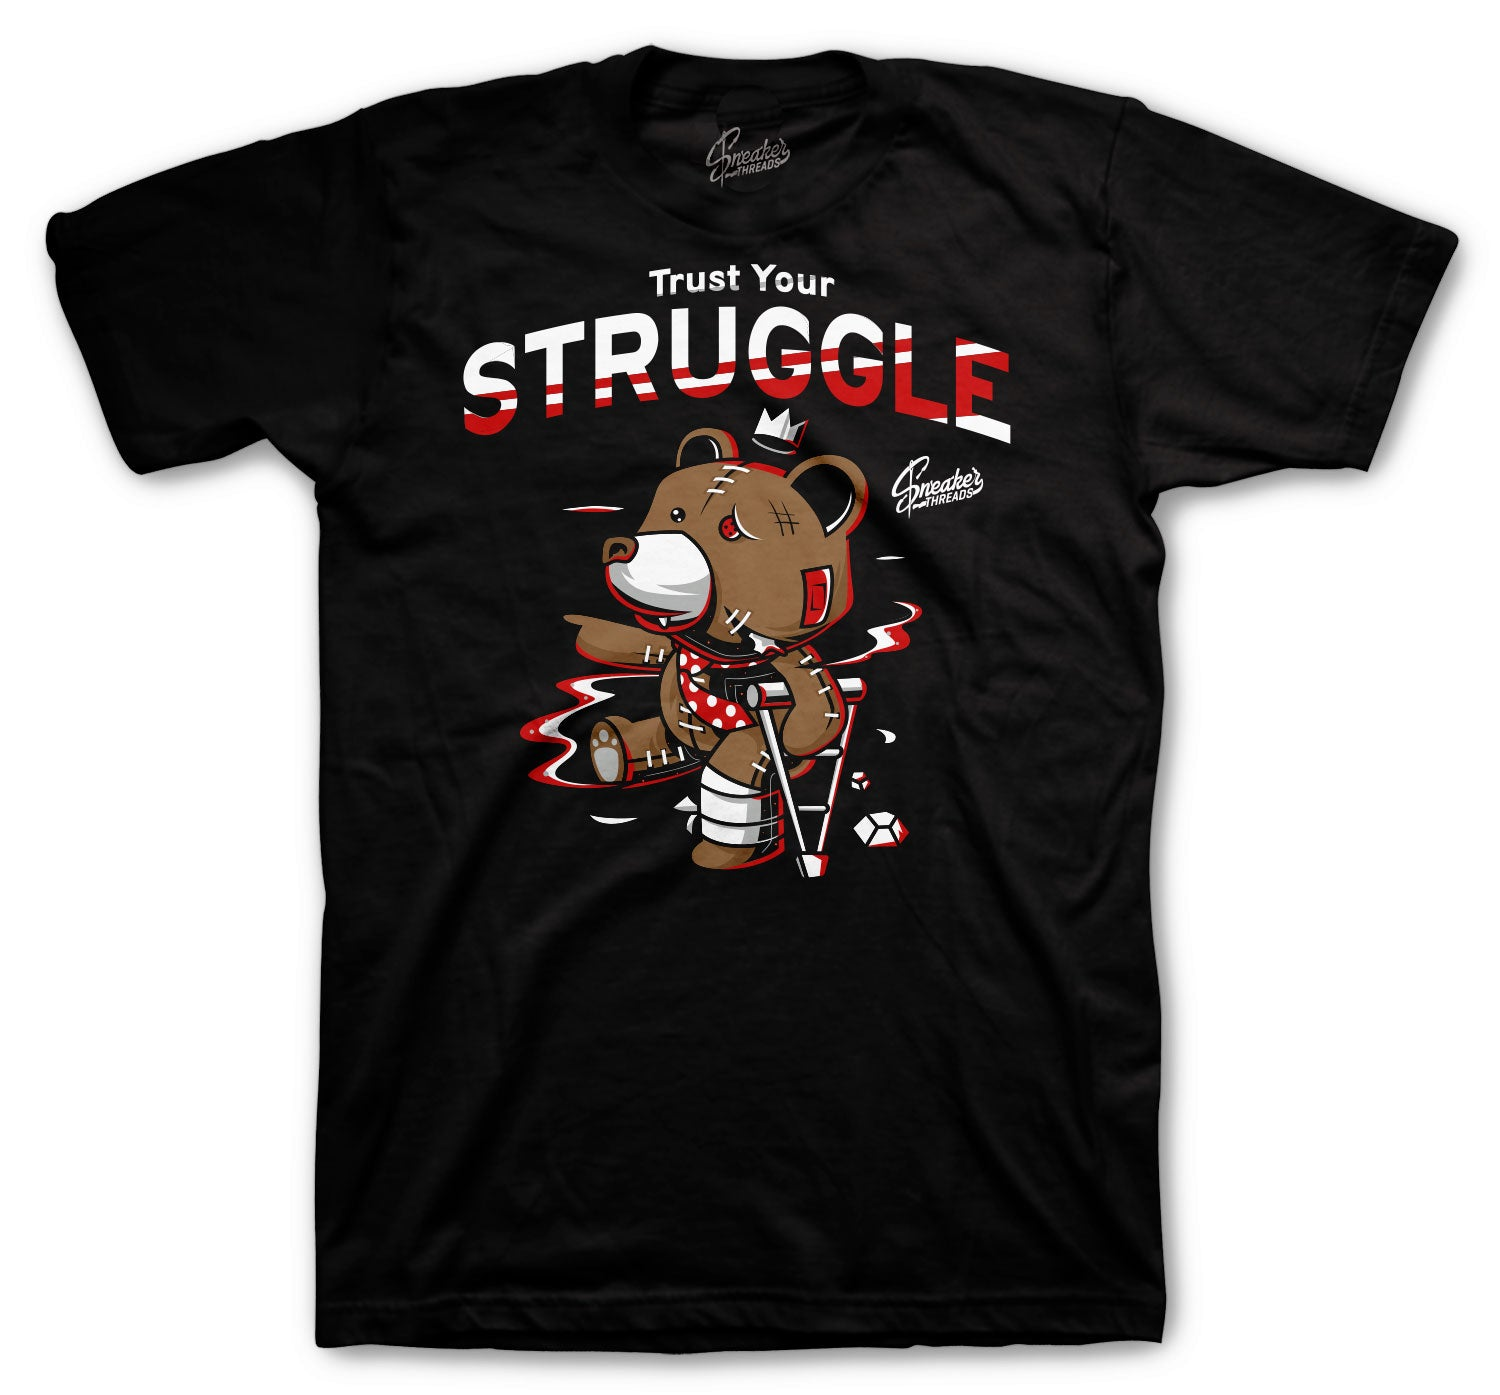 Jordan 6 Carmine Shirt - Trust Your Struggle - Black